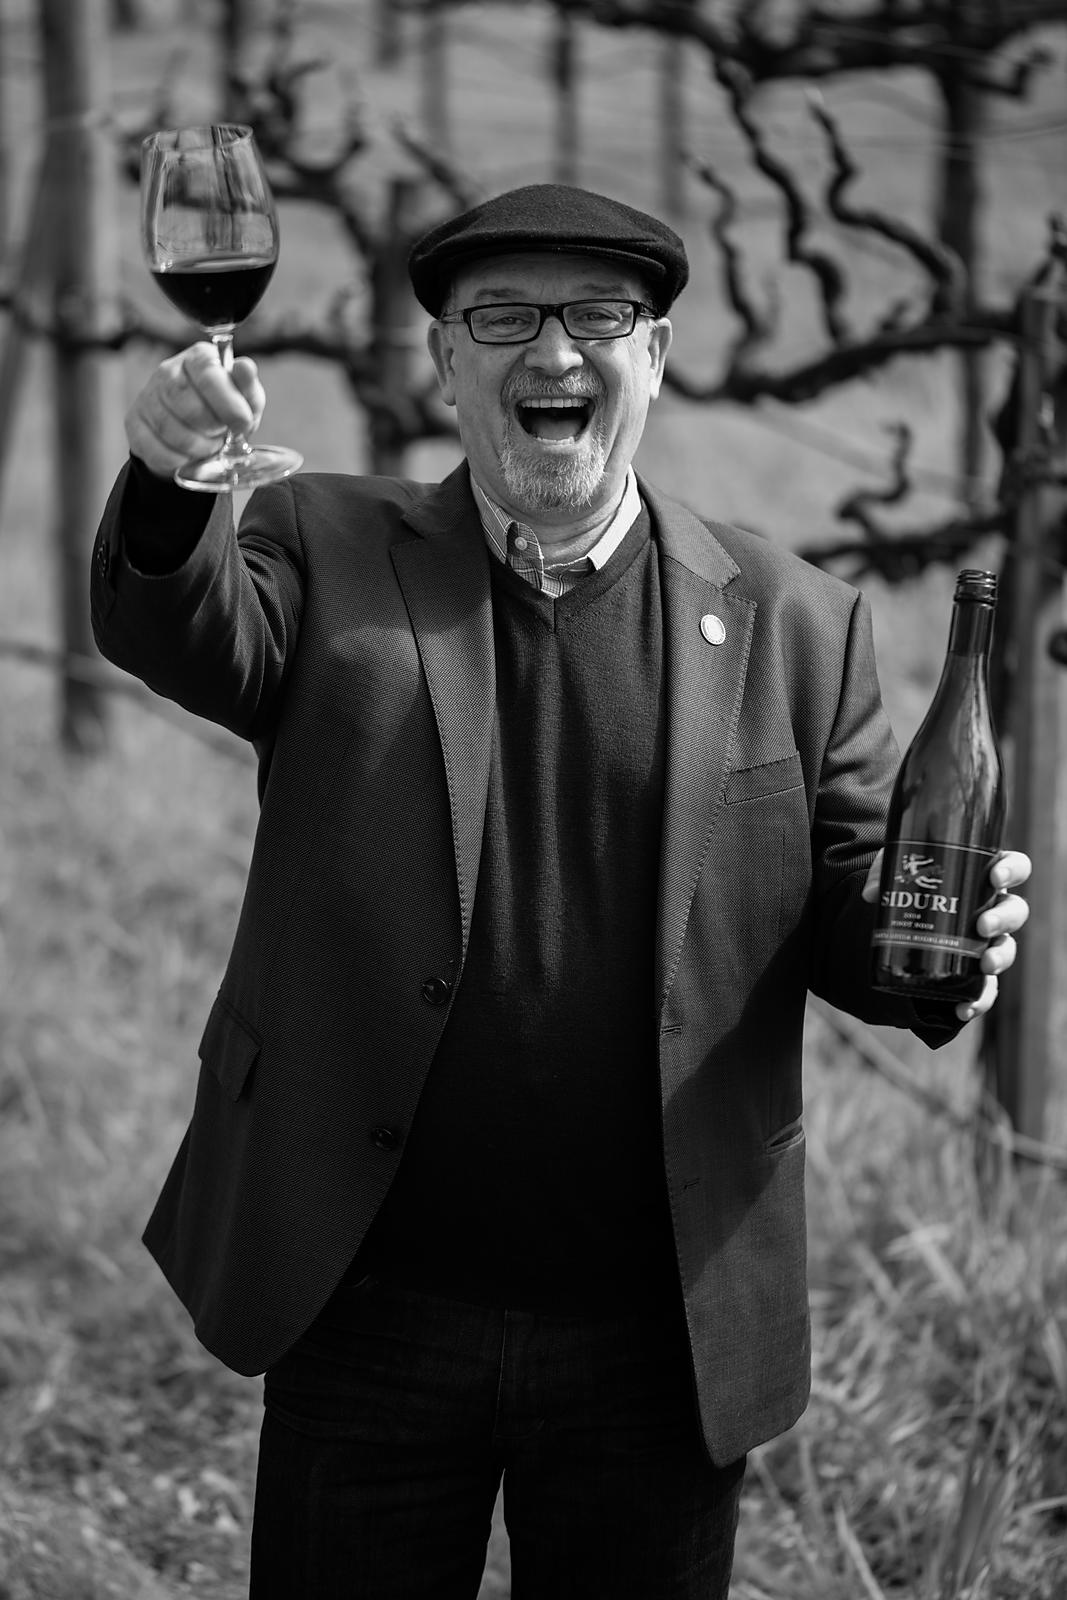 Portrait of Master Sommelier Michael Jordan of Jackson Family Wines by Jason Tinacci